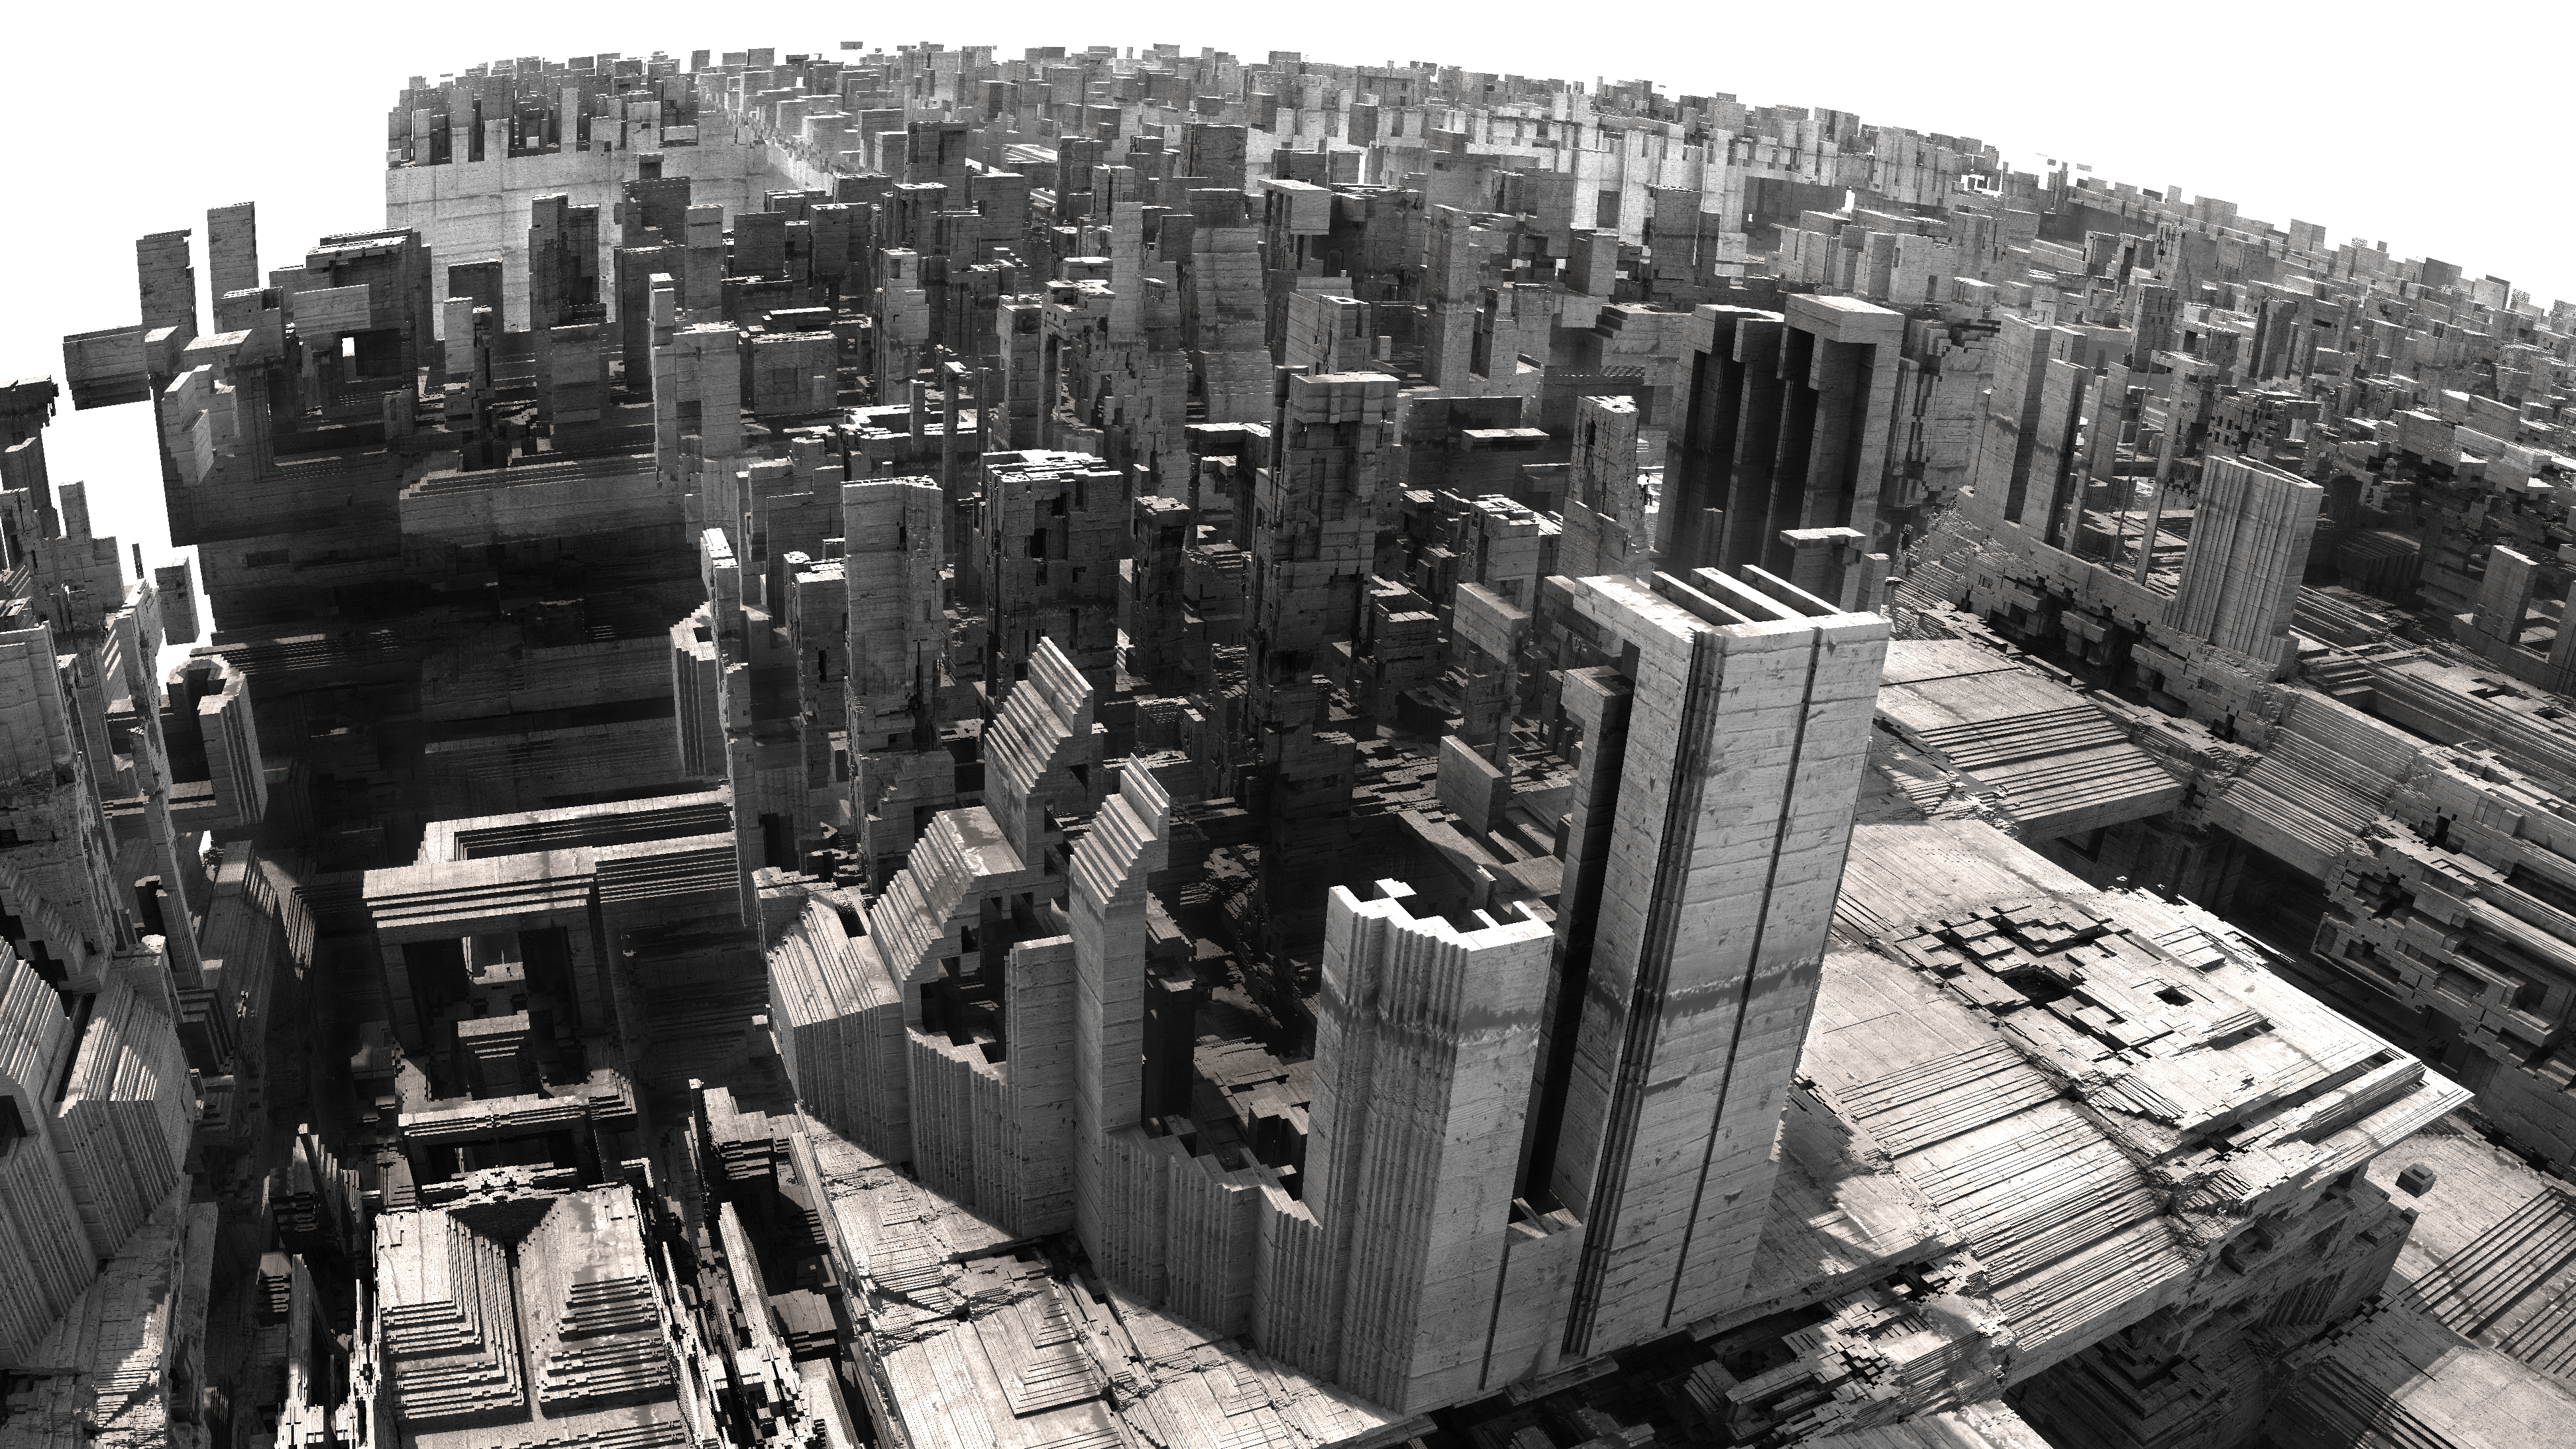 another city - Mandelbulb3D with Parameter by matze2001 on